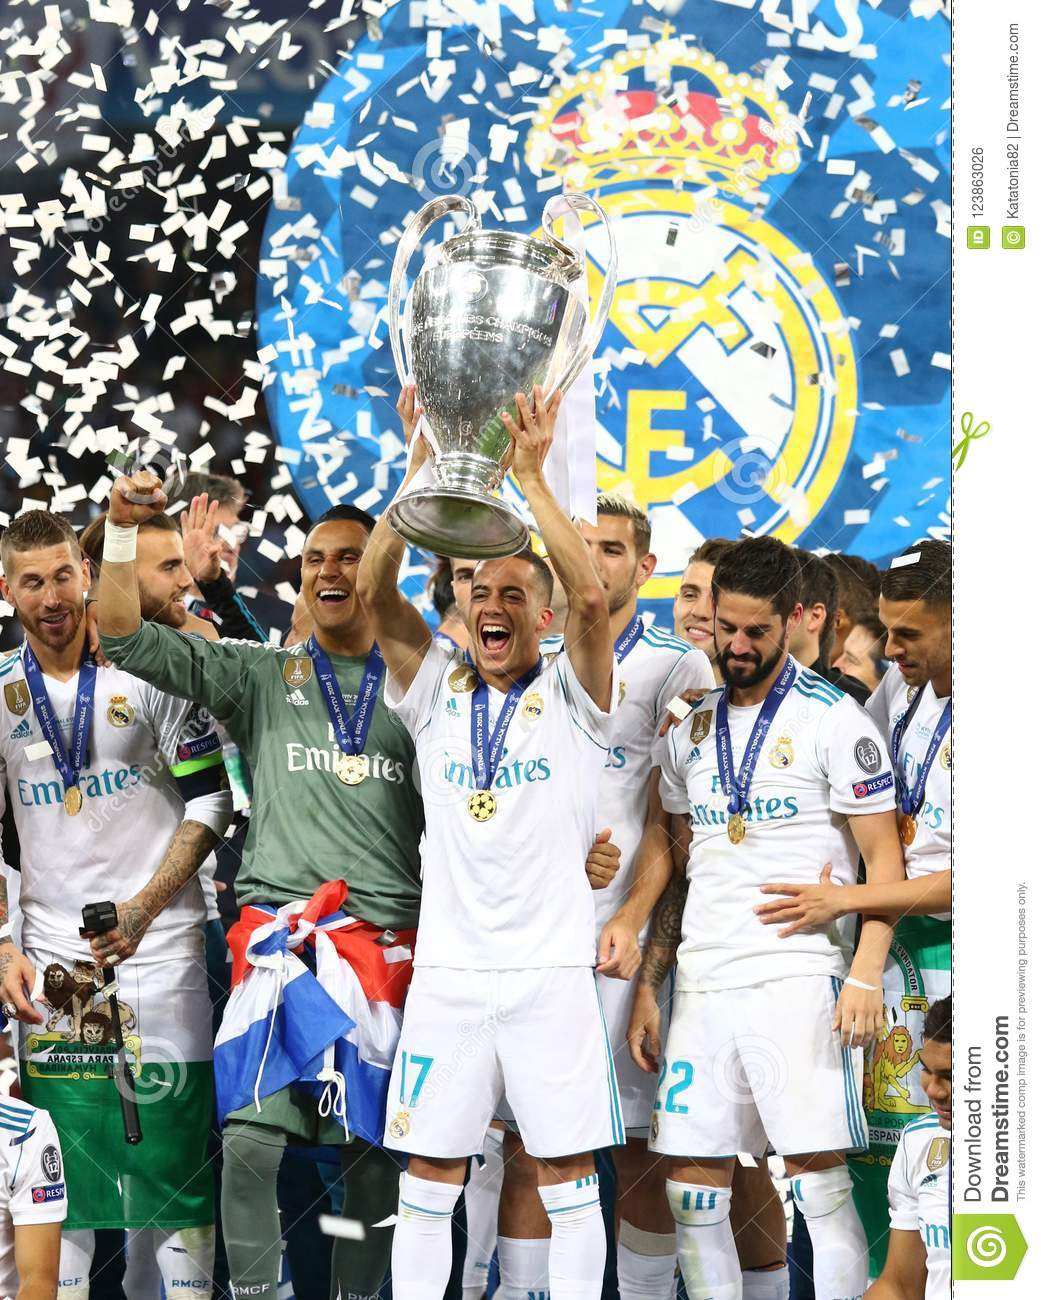 2018 Real Madrid Champions League